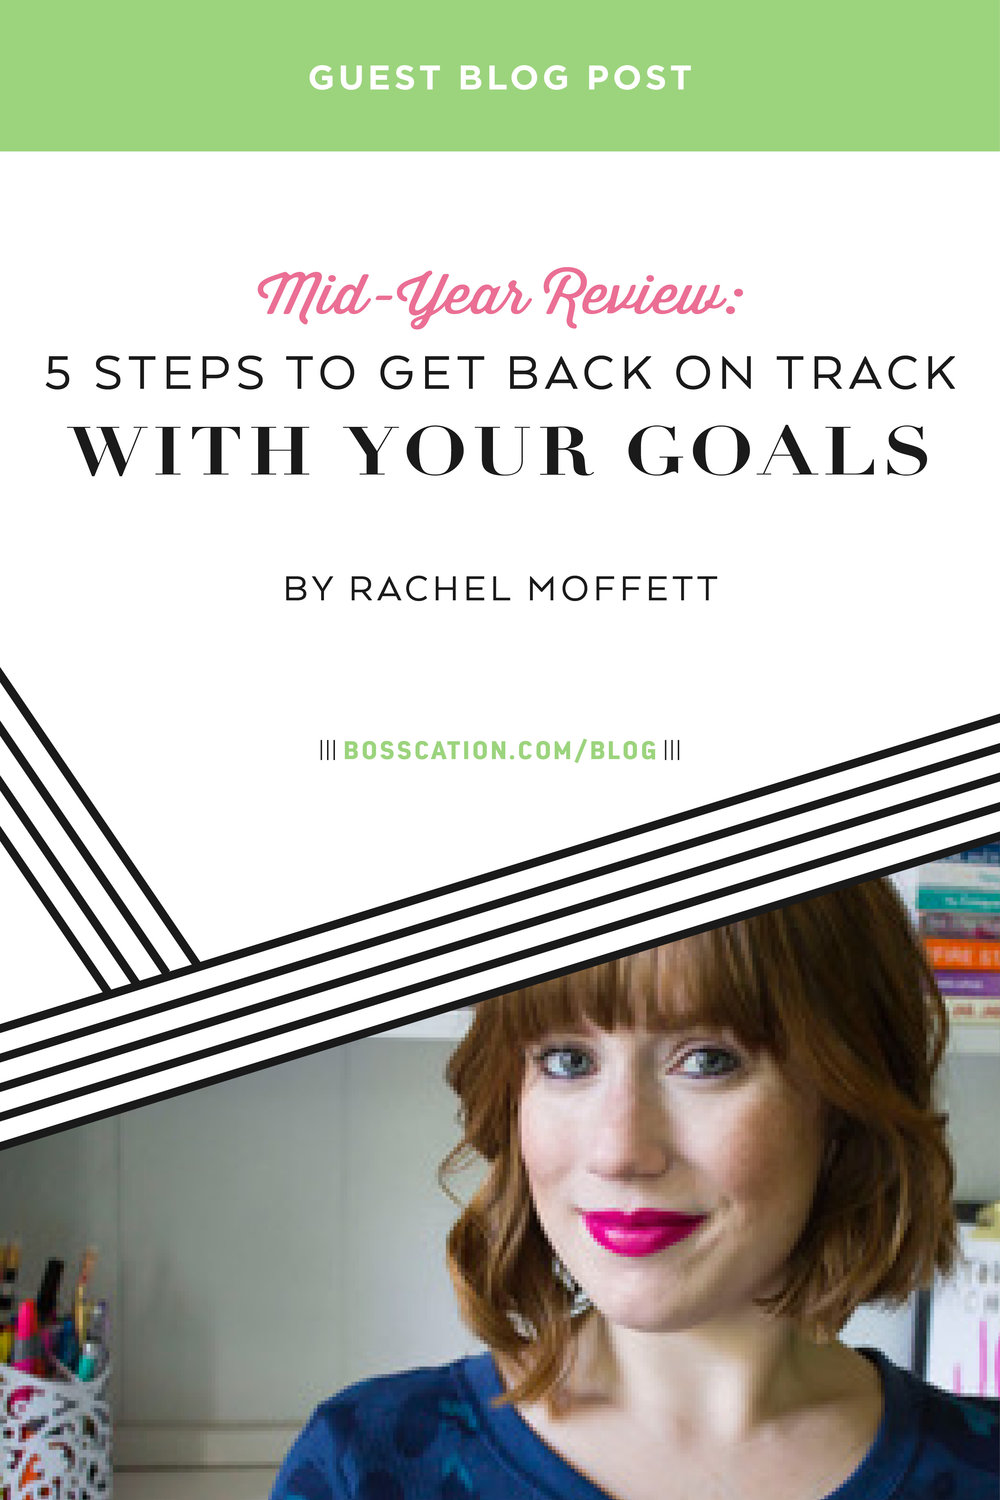 How to get back on track with your goals when it's mid-way through the year. Review your past goals and set new ones.